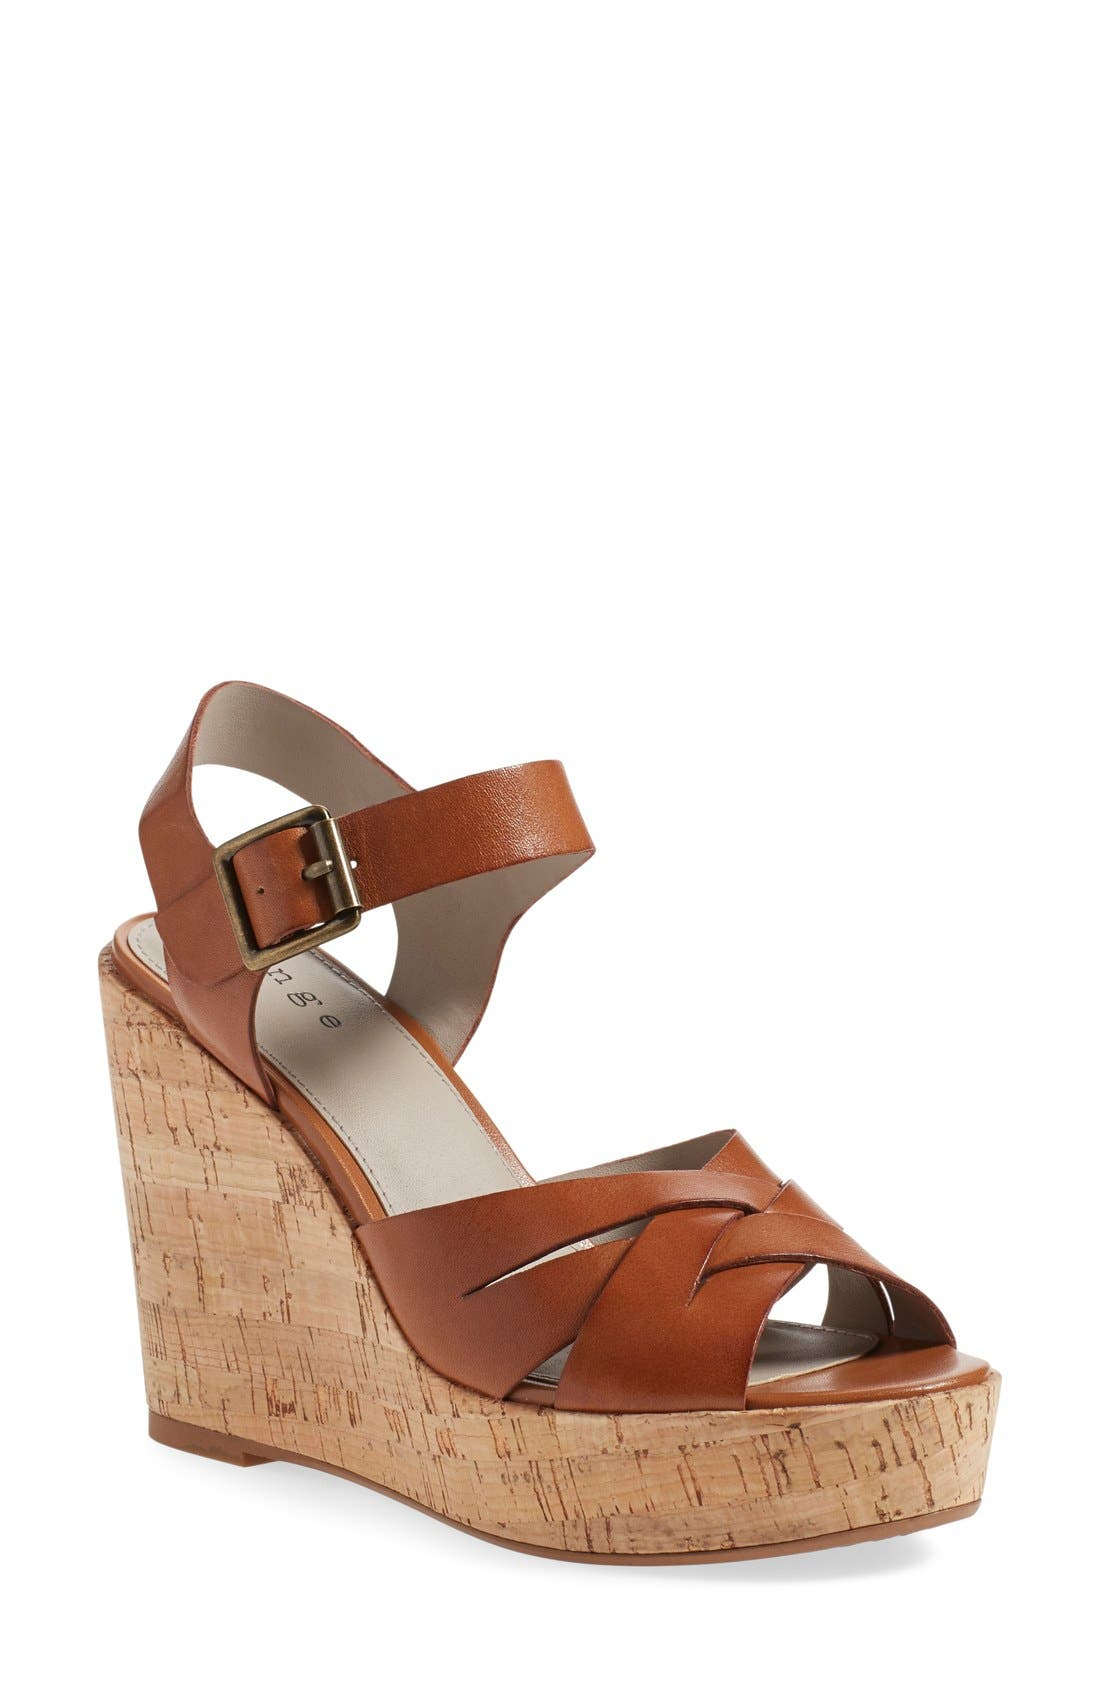 Main Image - Hinge 'Hadley' Wedge Sandal (Women)